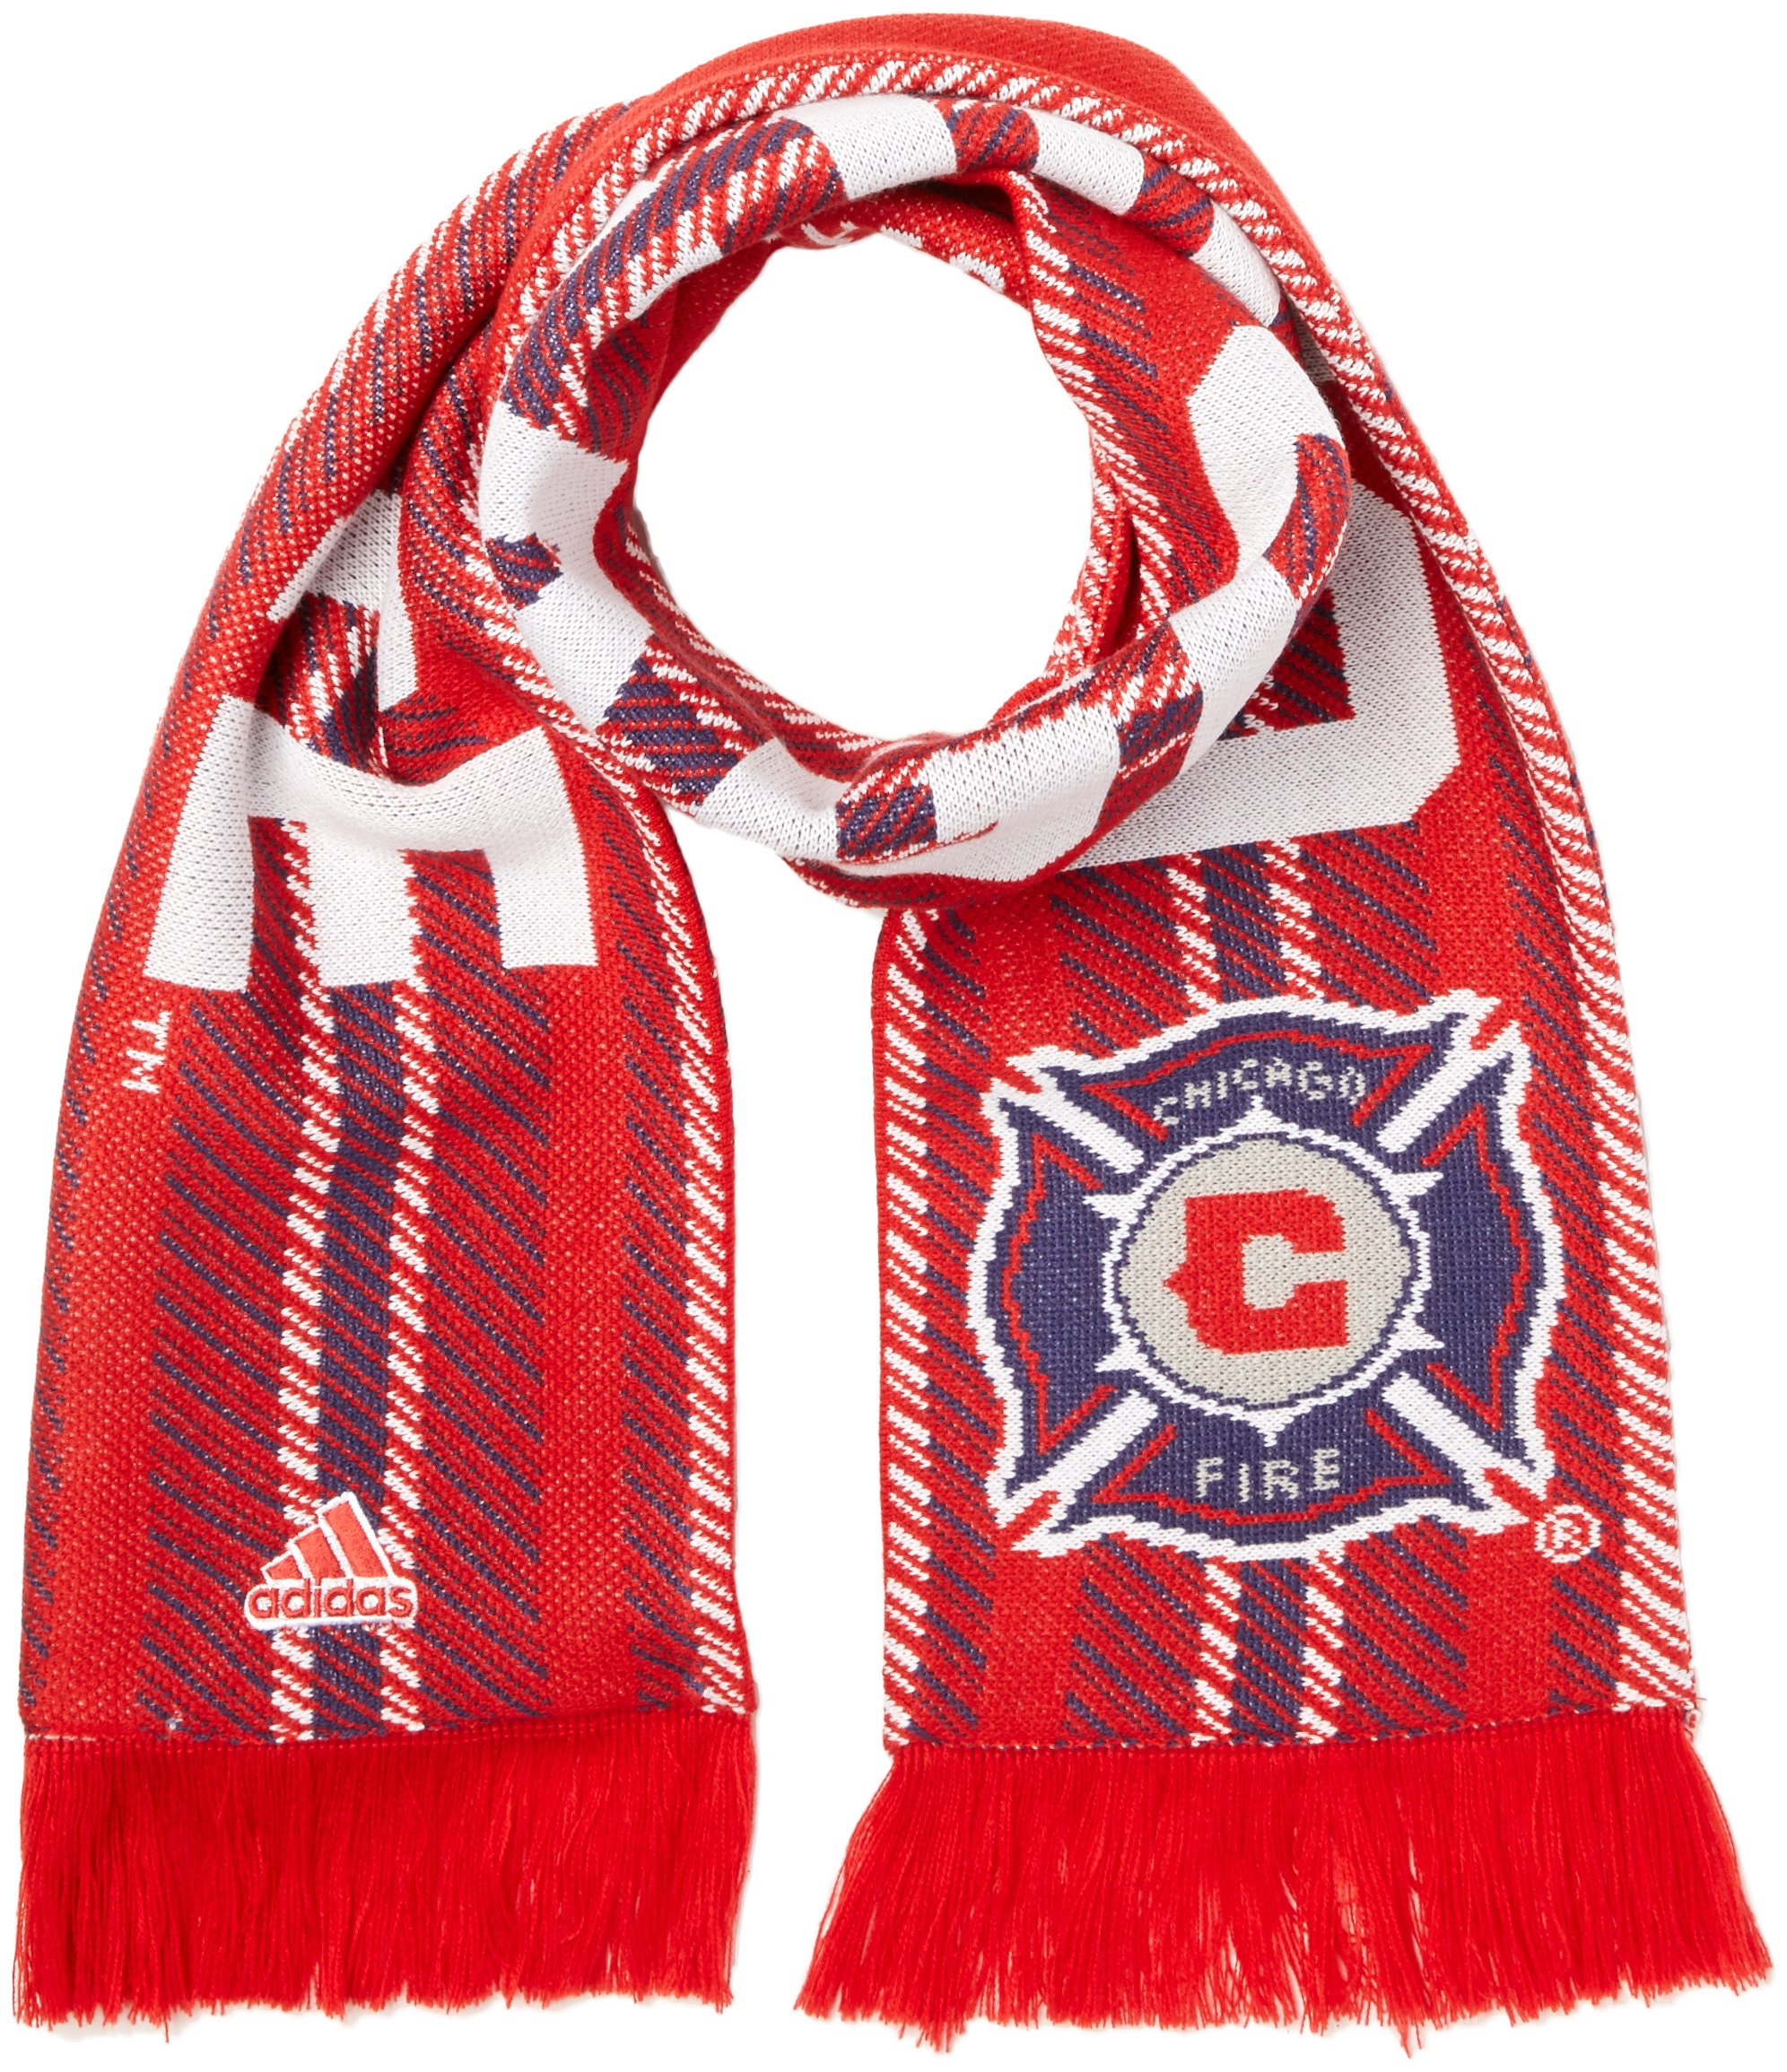 adidas MLS Chicago Fire Jacquard Scarf with Block Name, One Size, Red